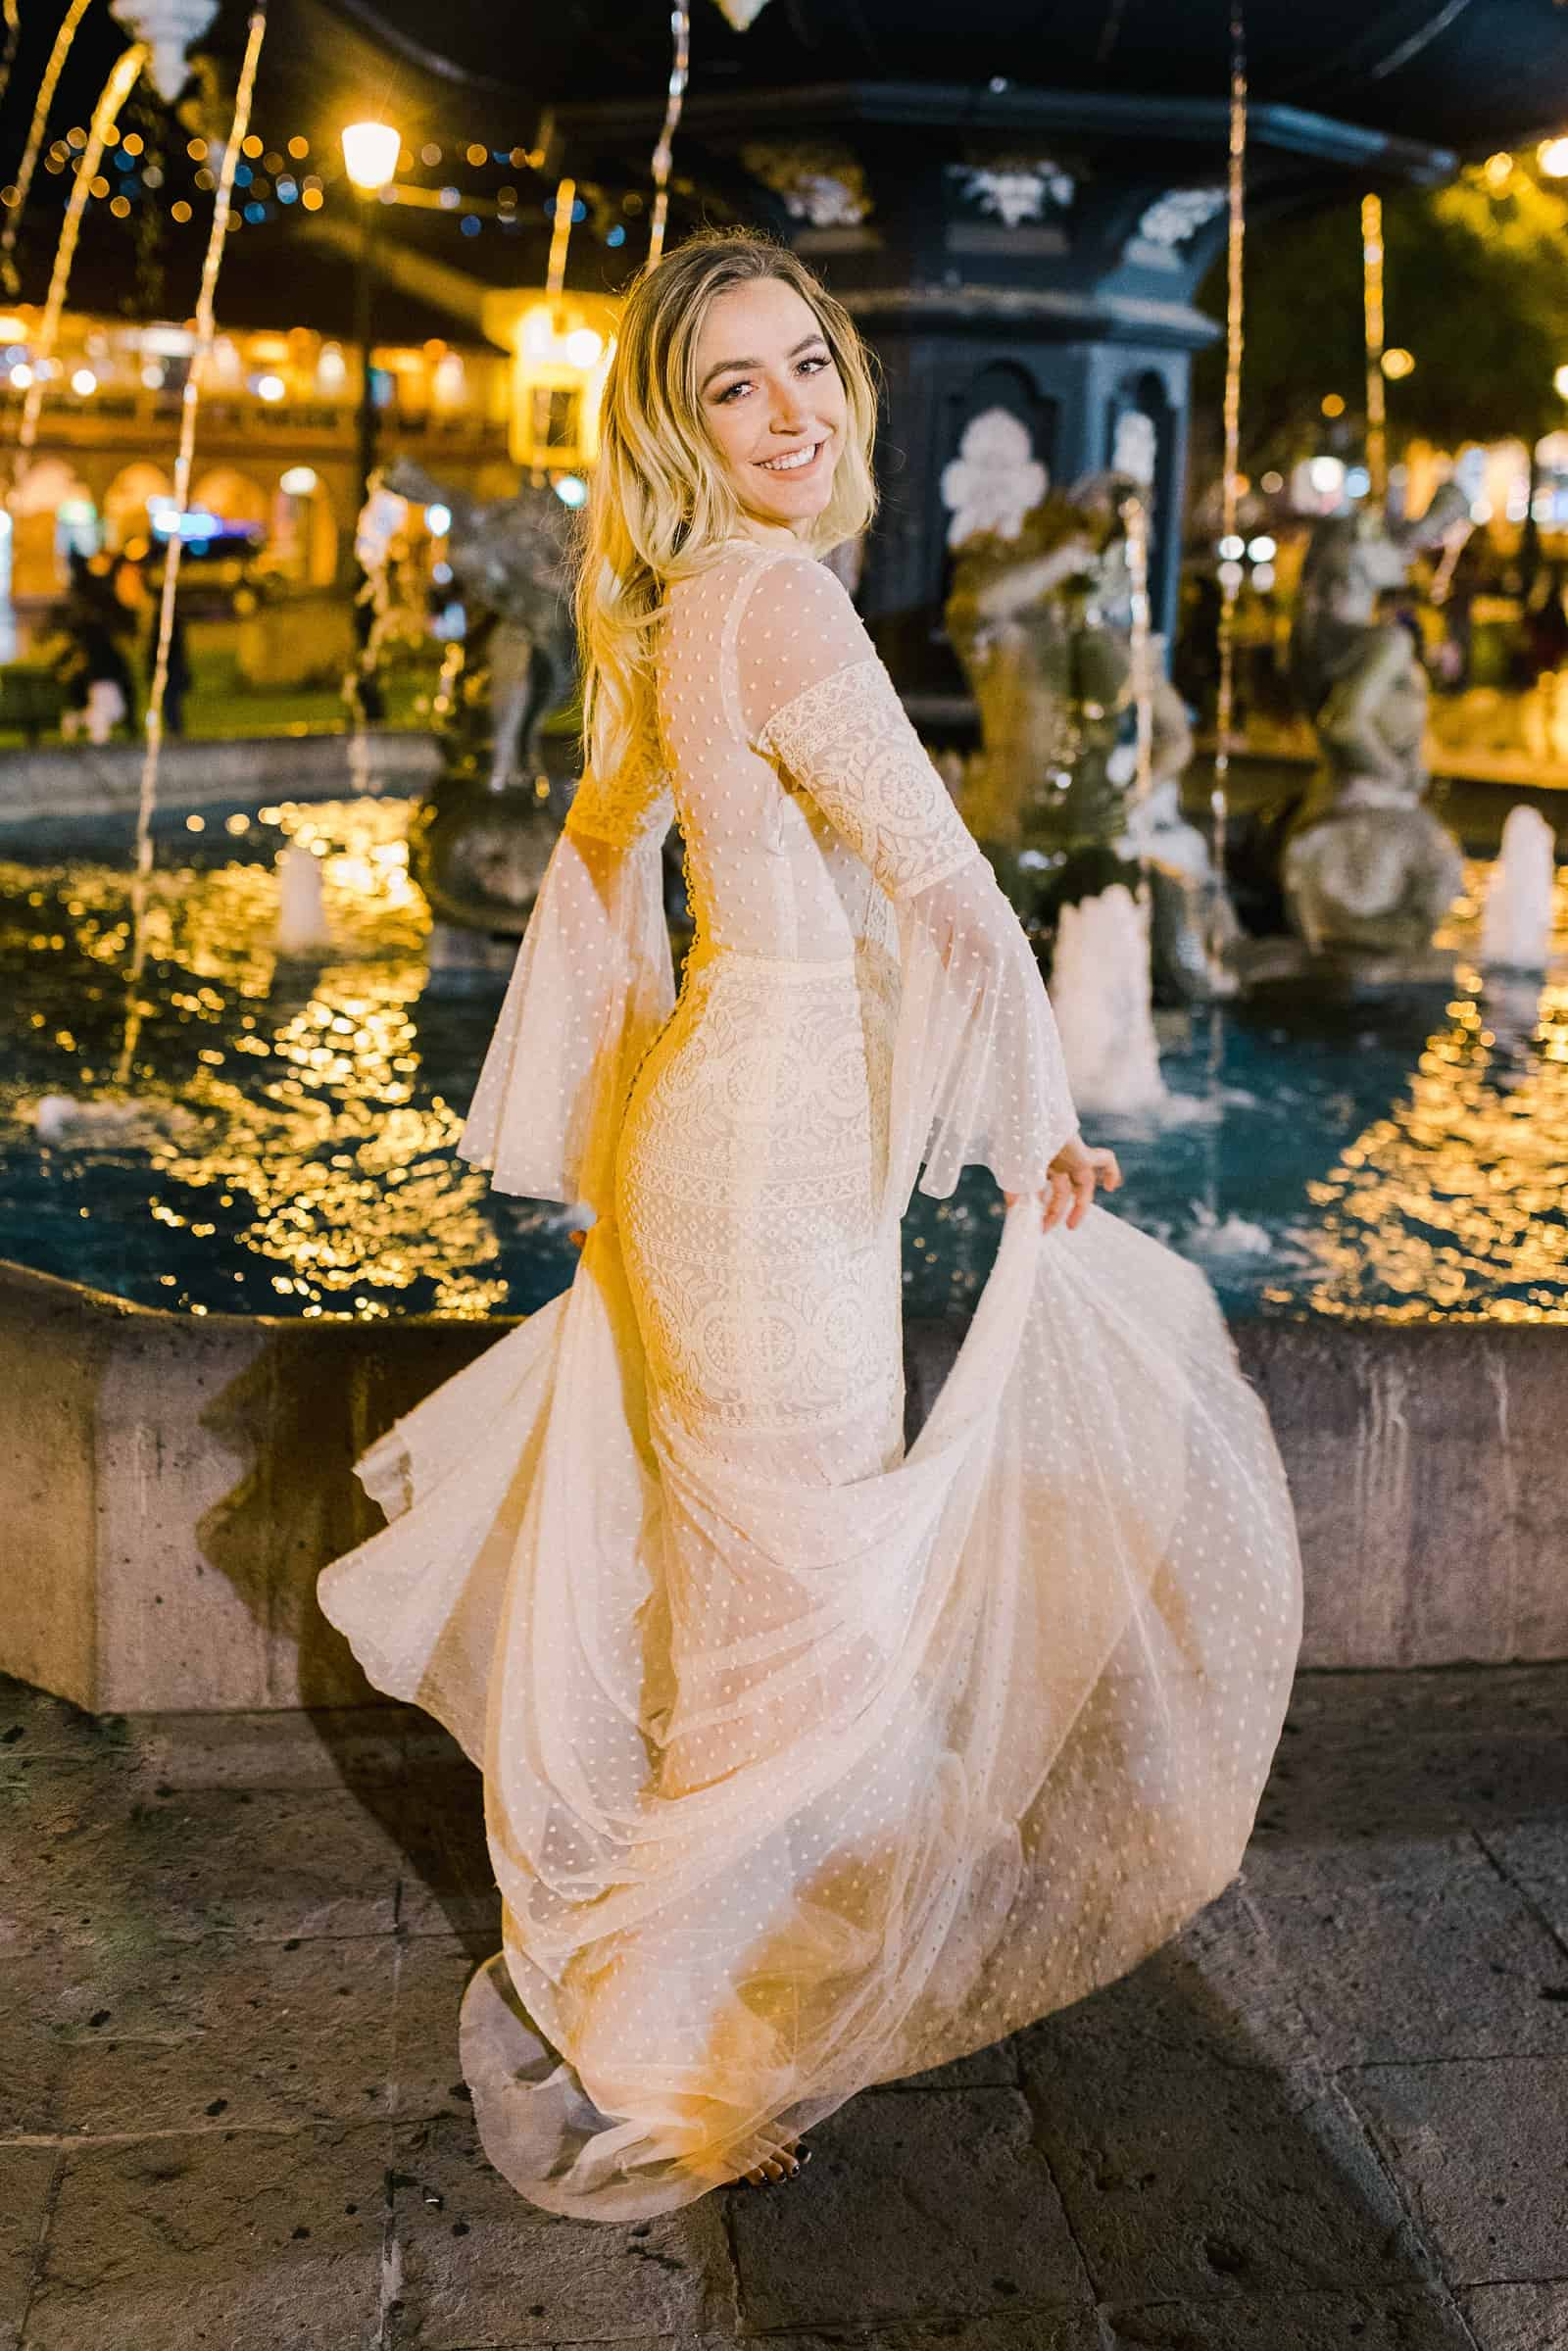 Cusco Peru Destination Wedding Inspiration, travel photography, bride dances at Plaza de Armas at night